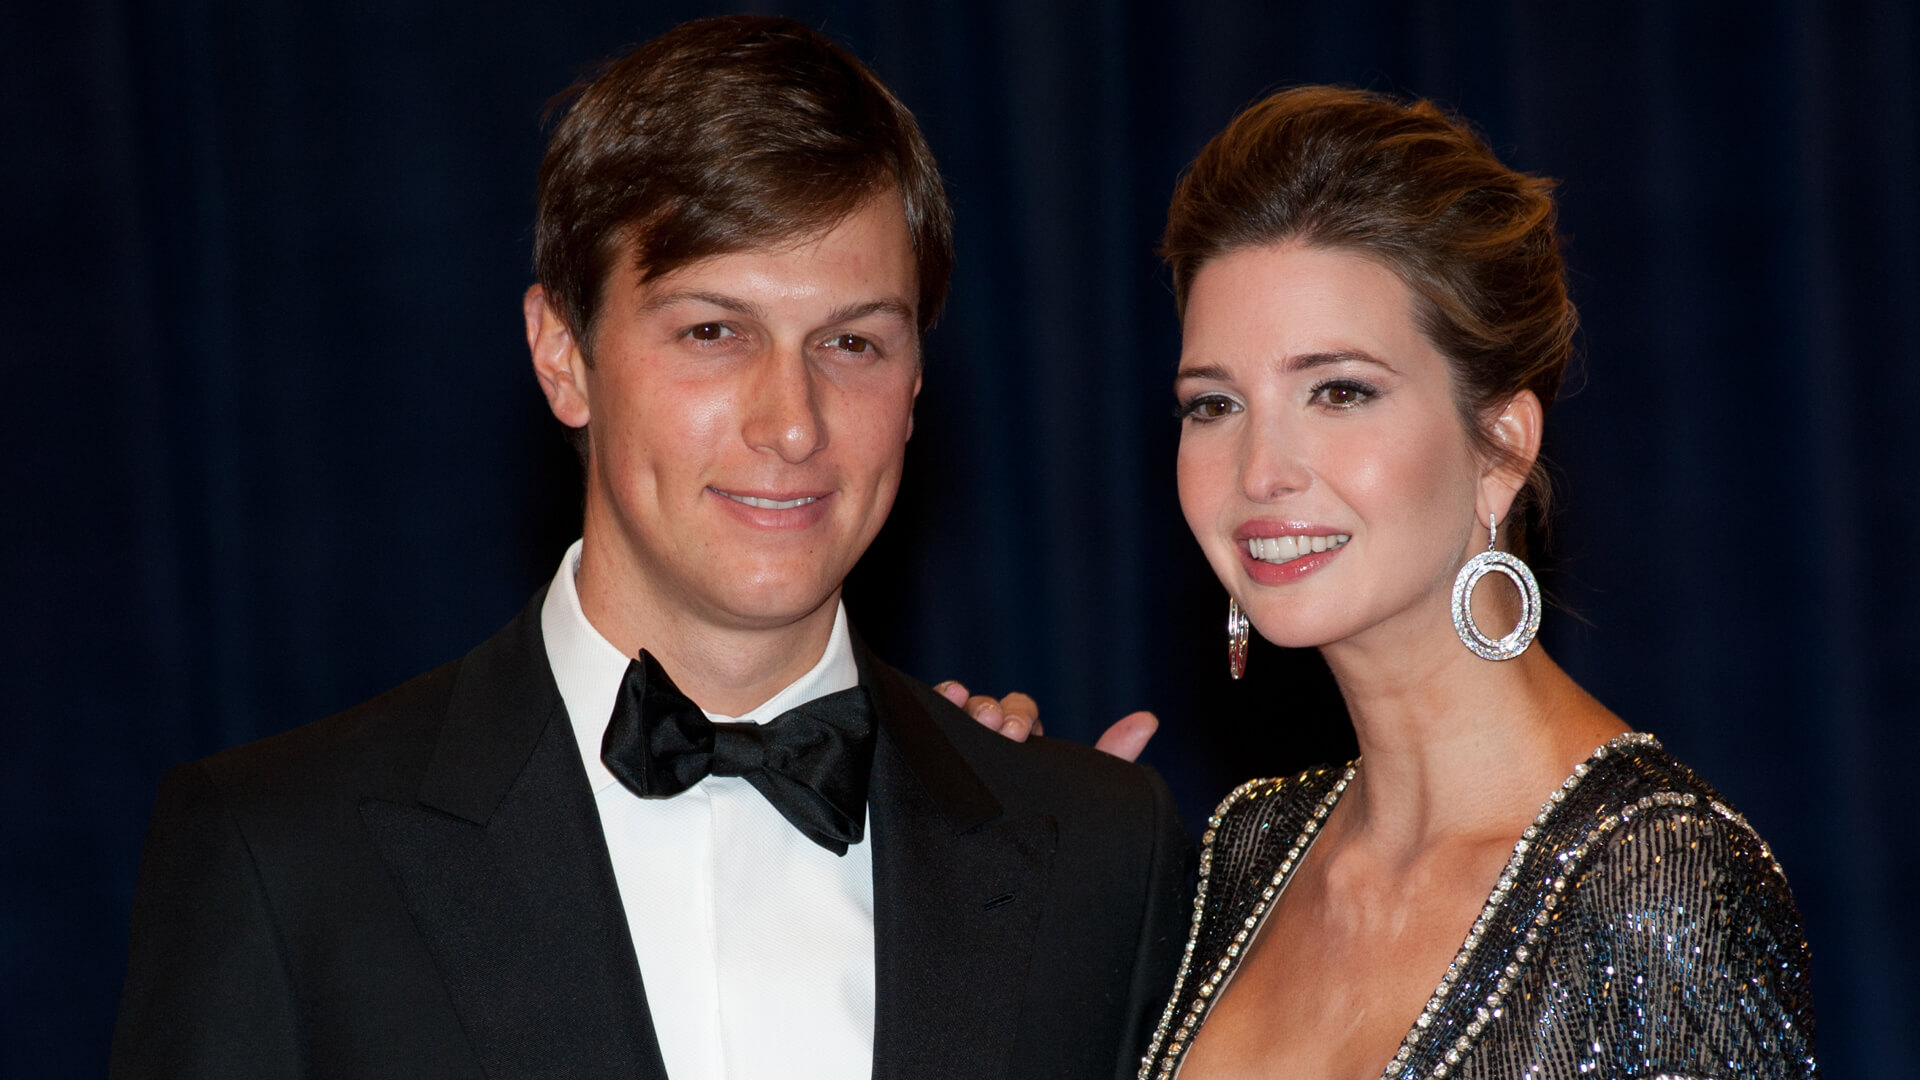 WASHINGTON - APRIL 28: Ivanka Trump and husband Jared Kushner at the White House Correspondents Dinner April 28, 2012 in Washington, D.